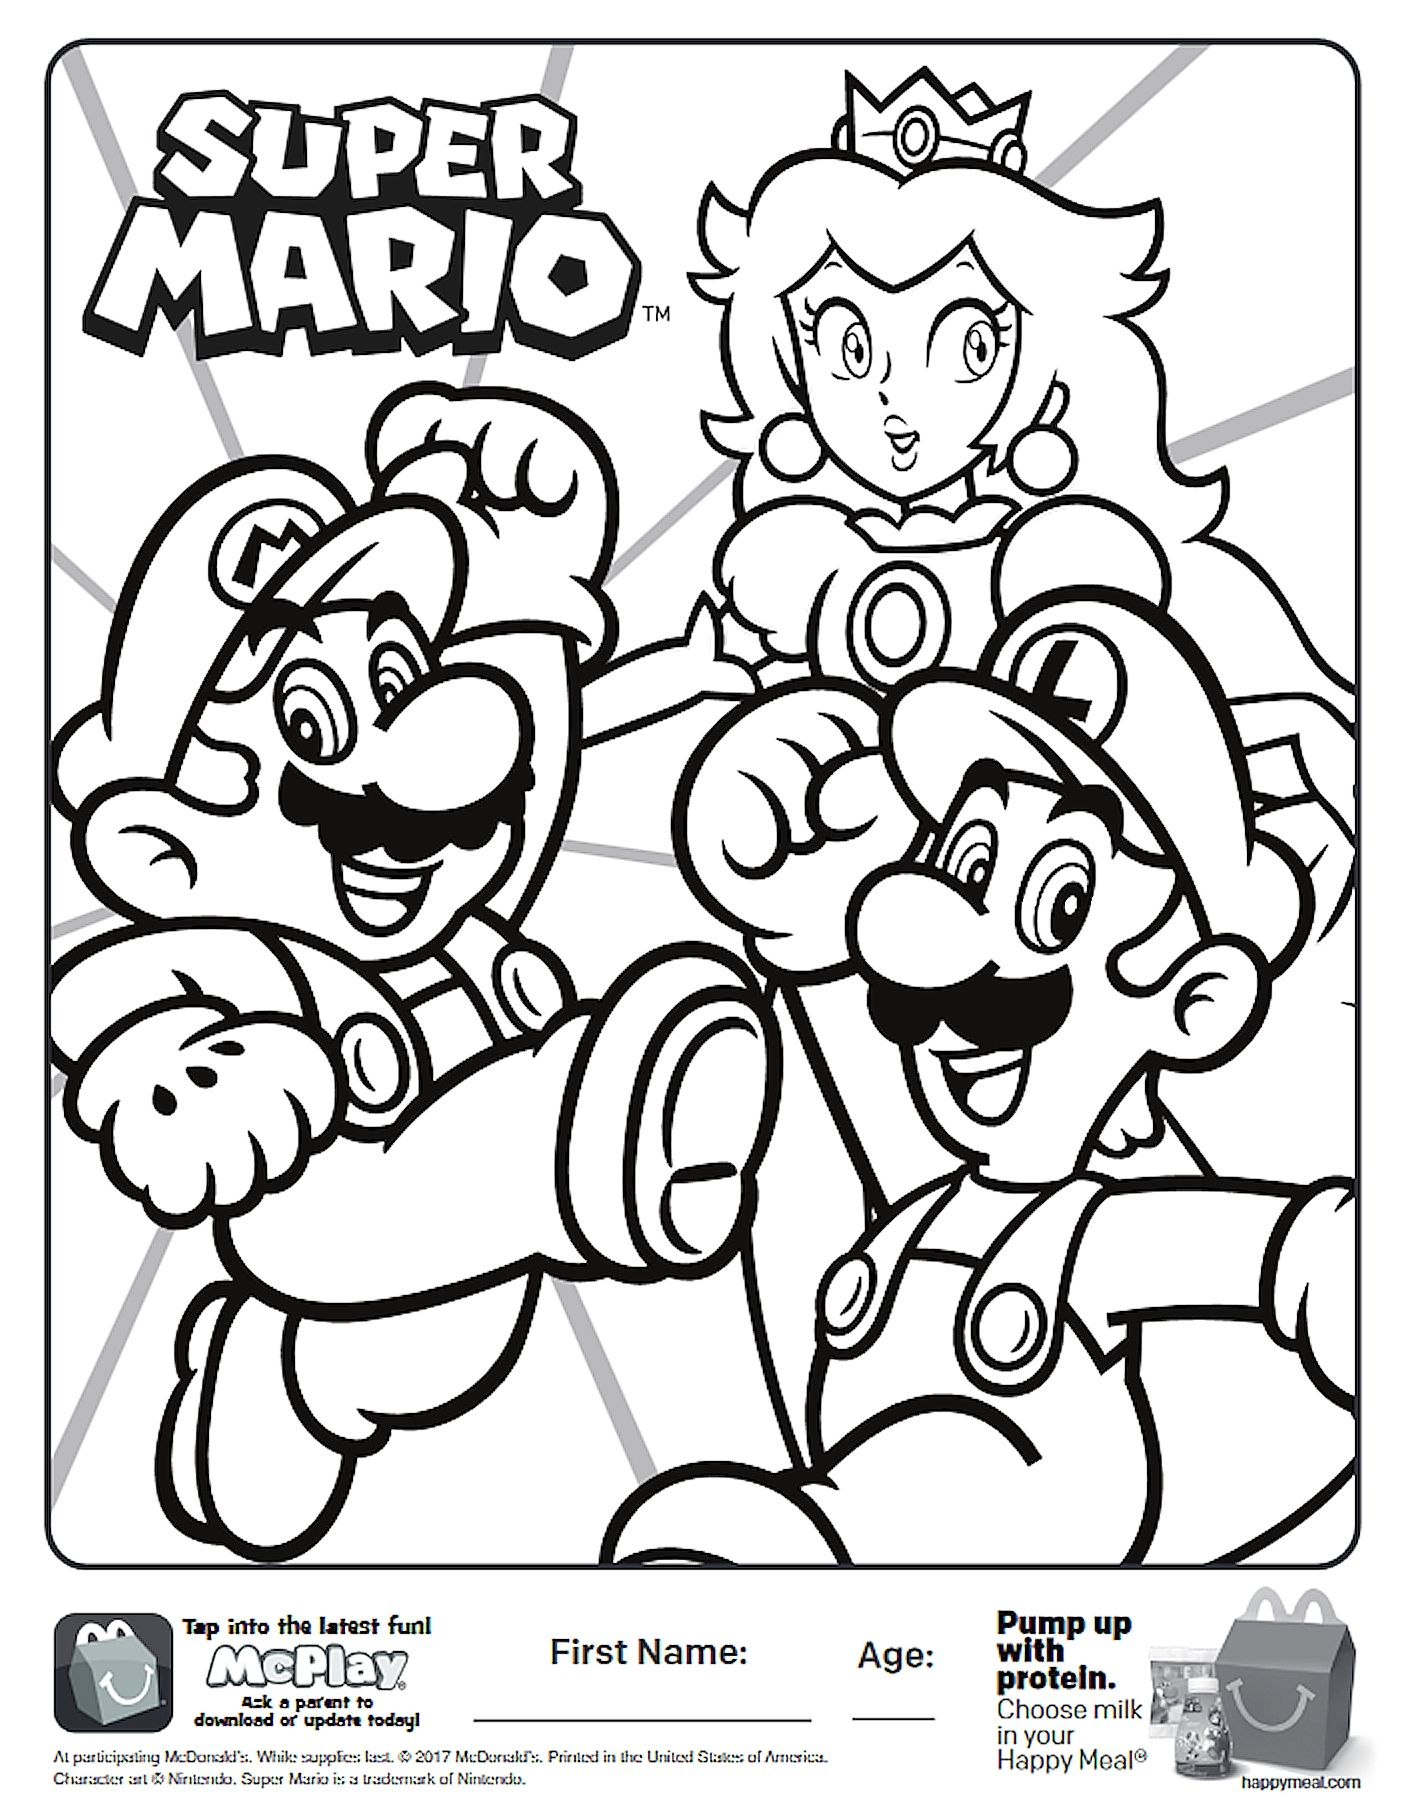 Here Is The Happy Meal Super Mario Coloring Page Click Picture To See My Video